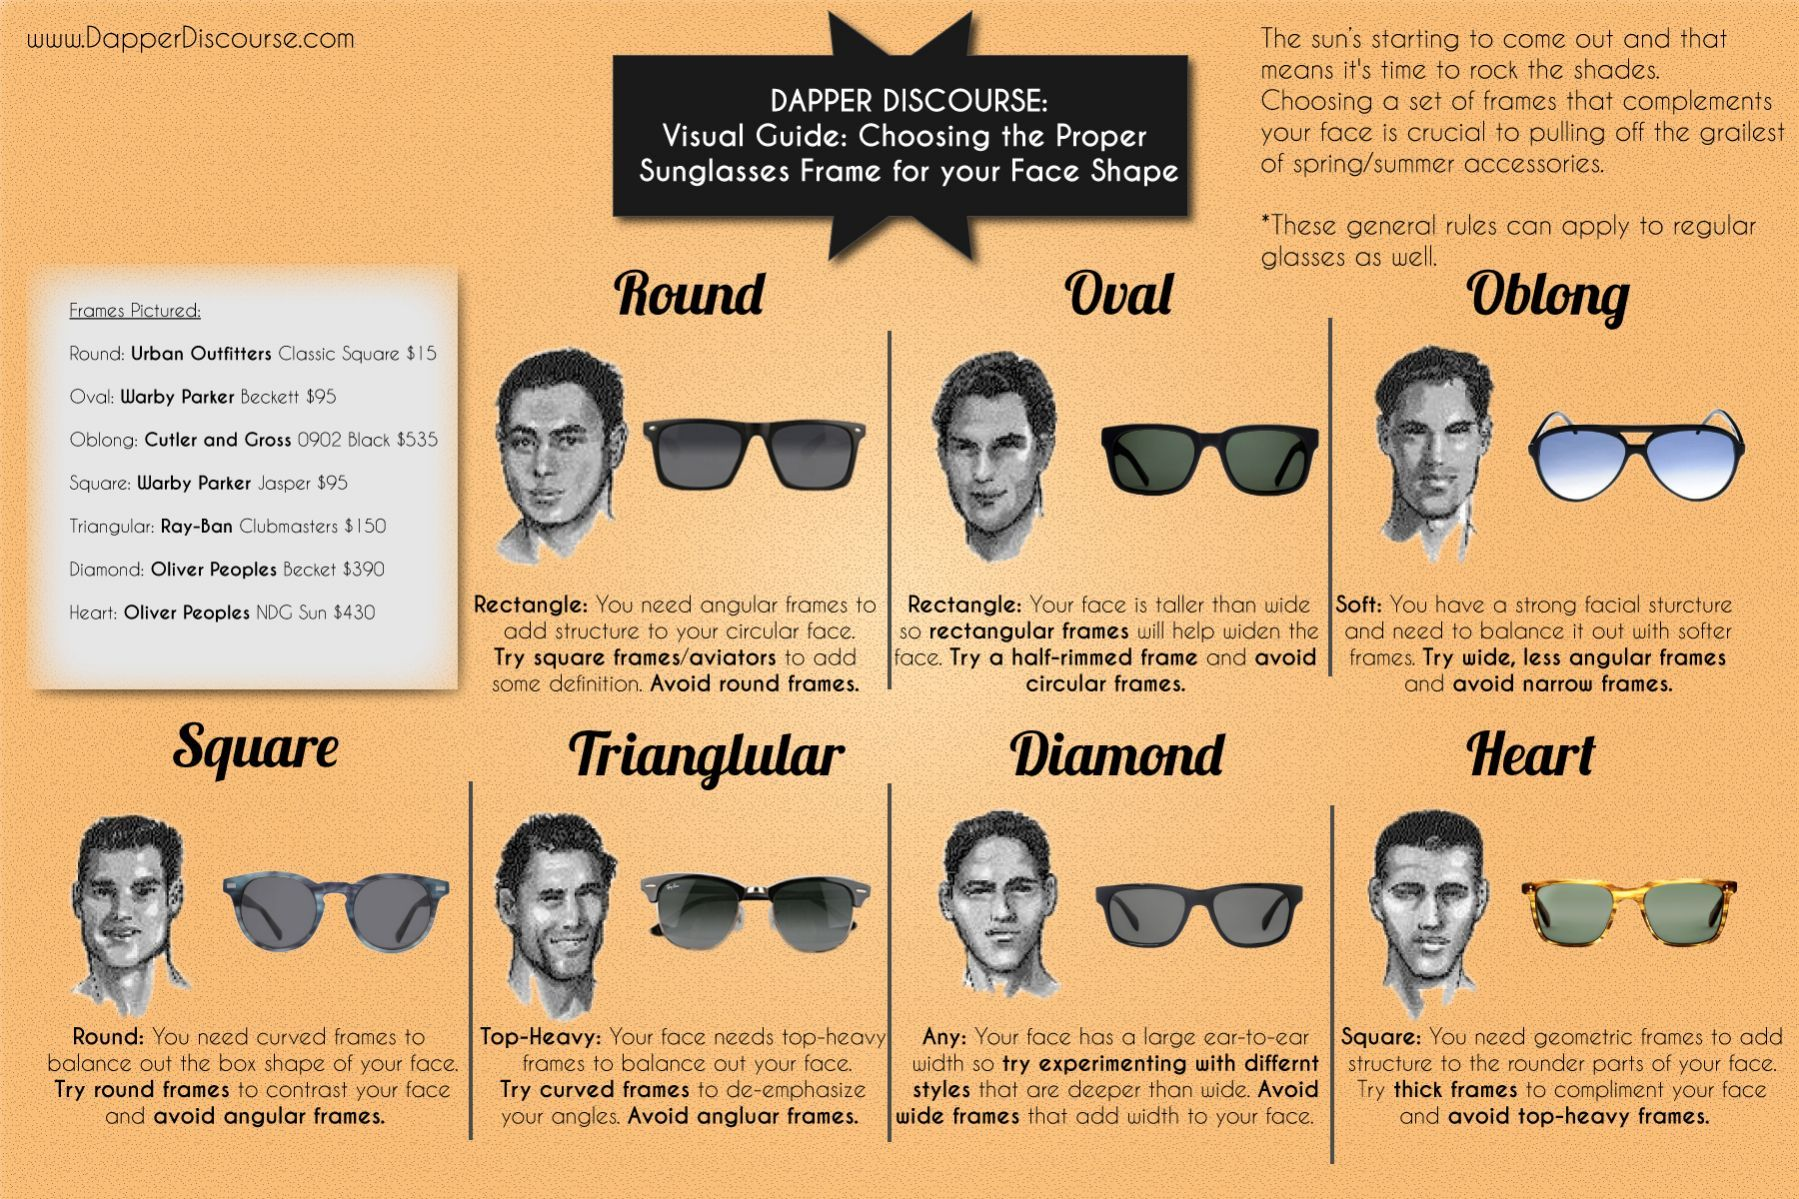 07fb17beff1e Visual Guide: Choosing the Right Sunglasses Frames for Your Face Shape -  Imgur